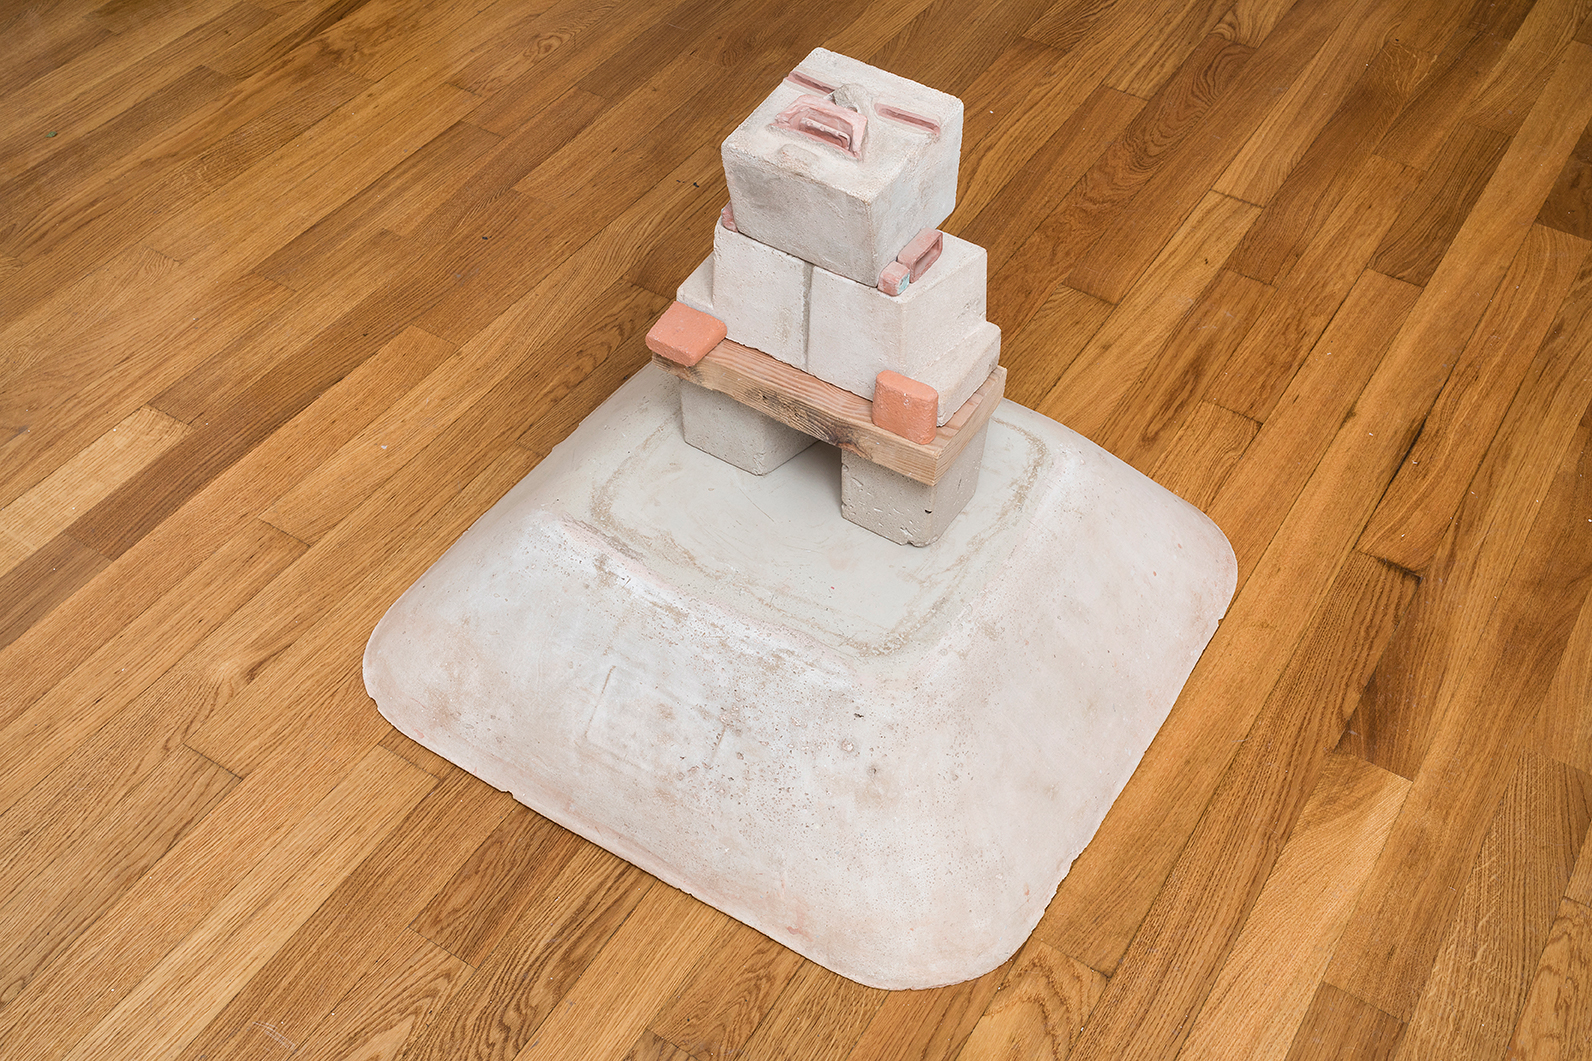 Steve Keister  Olmecoid Figure  2005 Cement, ceramic, acrylic, and wood 24 x 28 x 28 inches